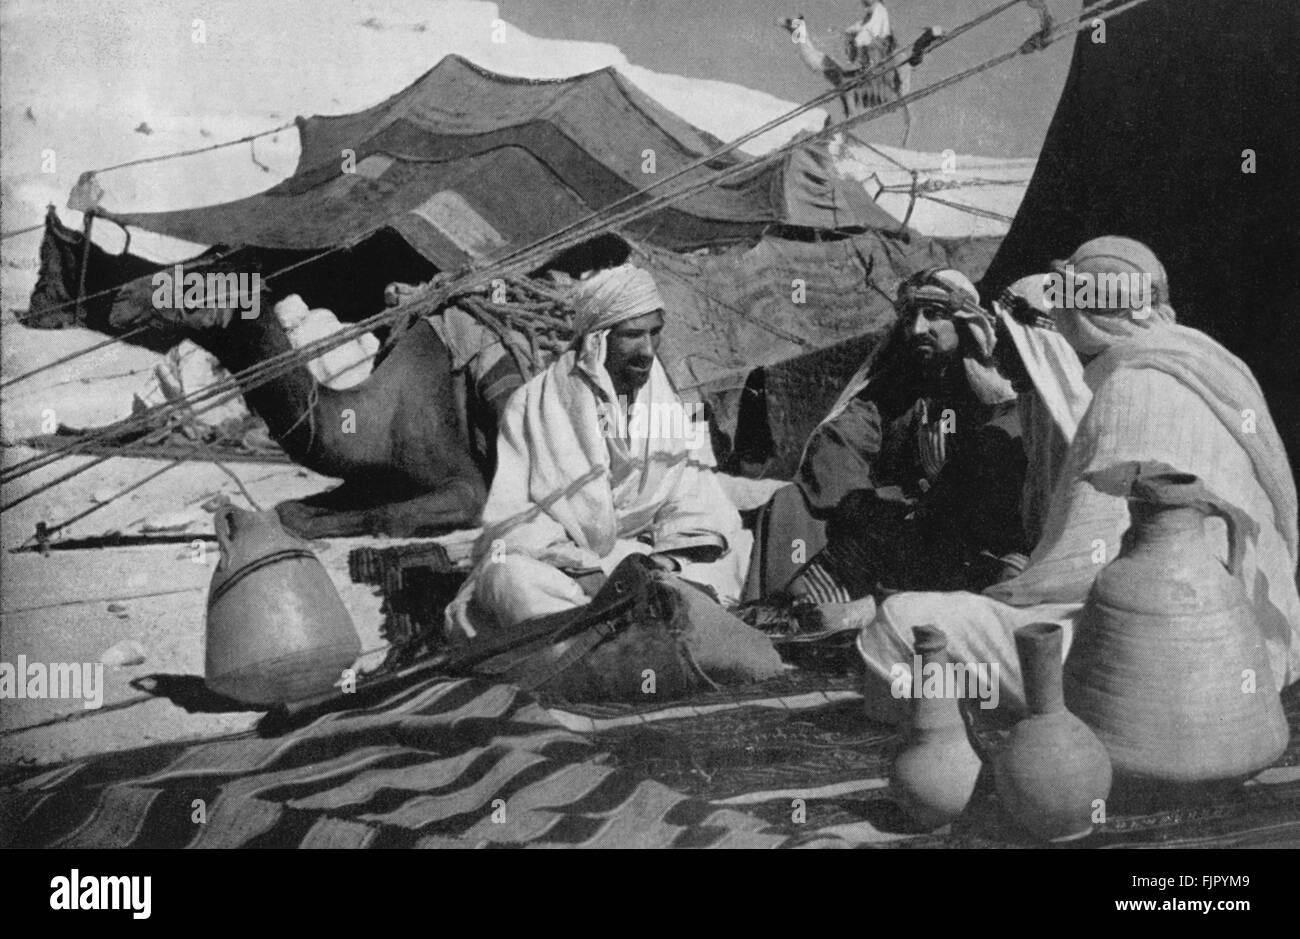 Bedouin in 1930s in the Holy Land  with their tents and camels. - Stock Image